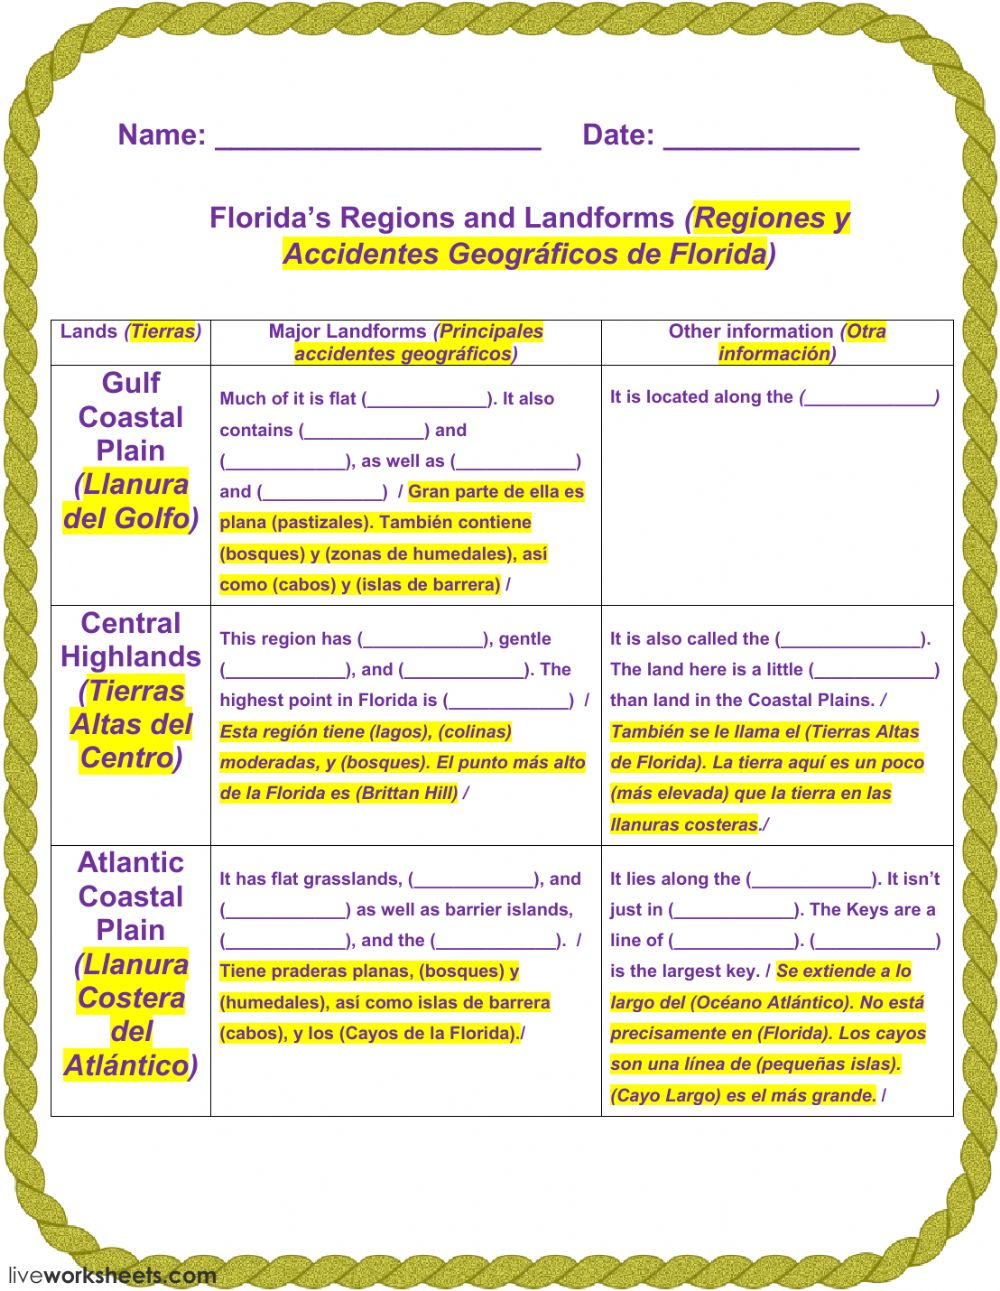 Worksheets Worksheets On Landforms floridas regions and landforms 1 interactive worksheet barrier islands